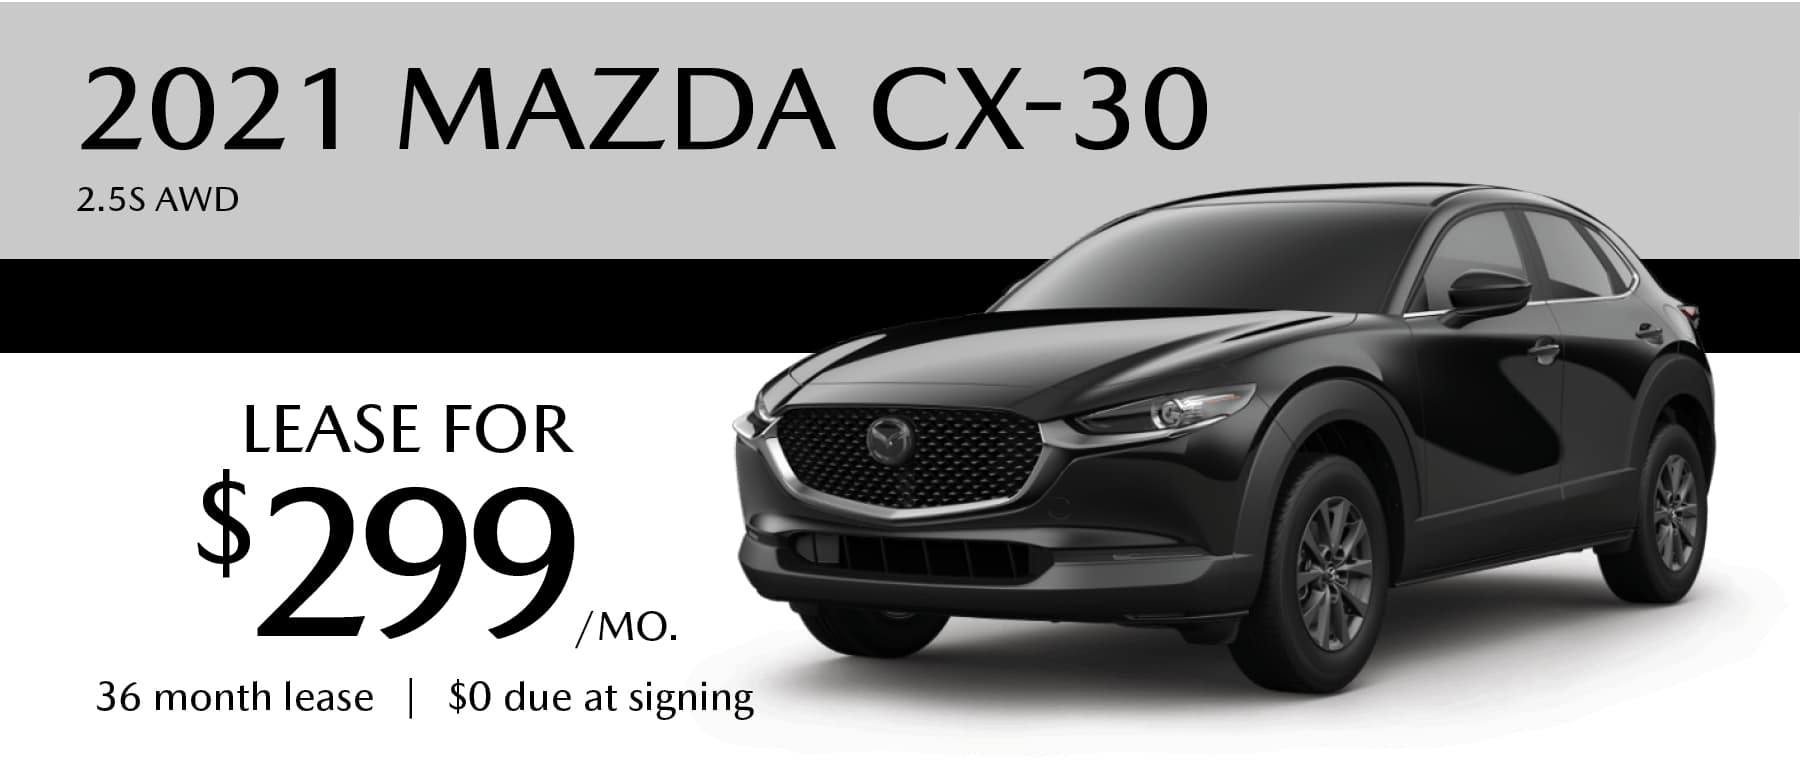 Lease for $299/month for 36 months and $0 due at signing!